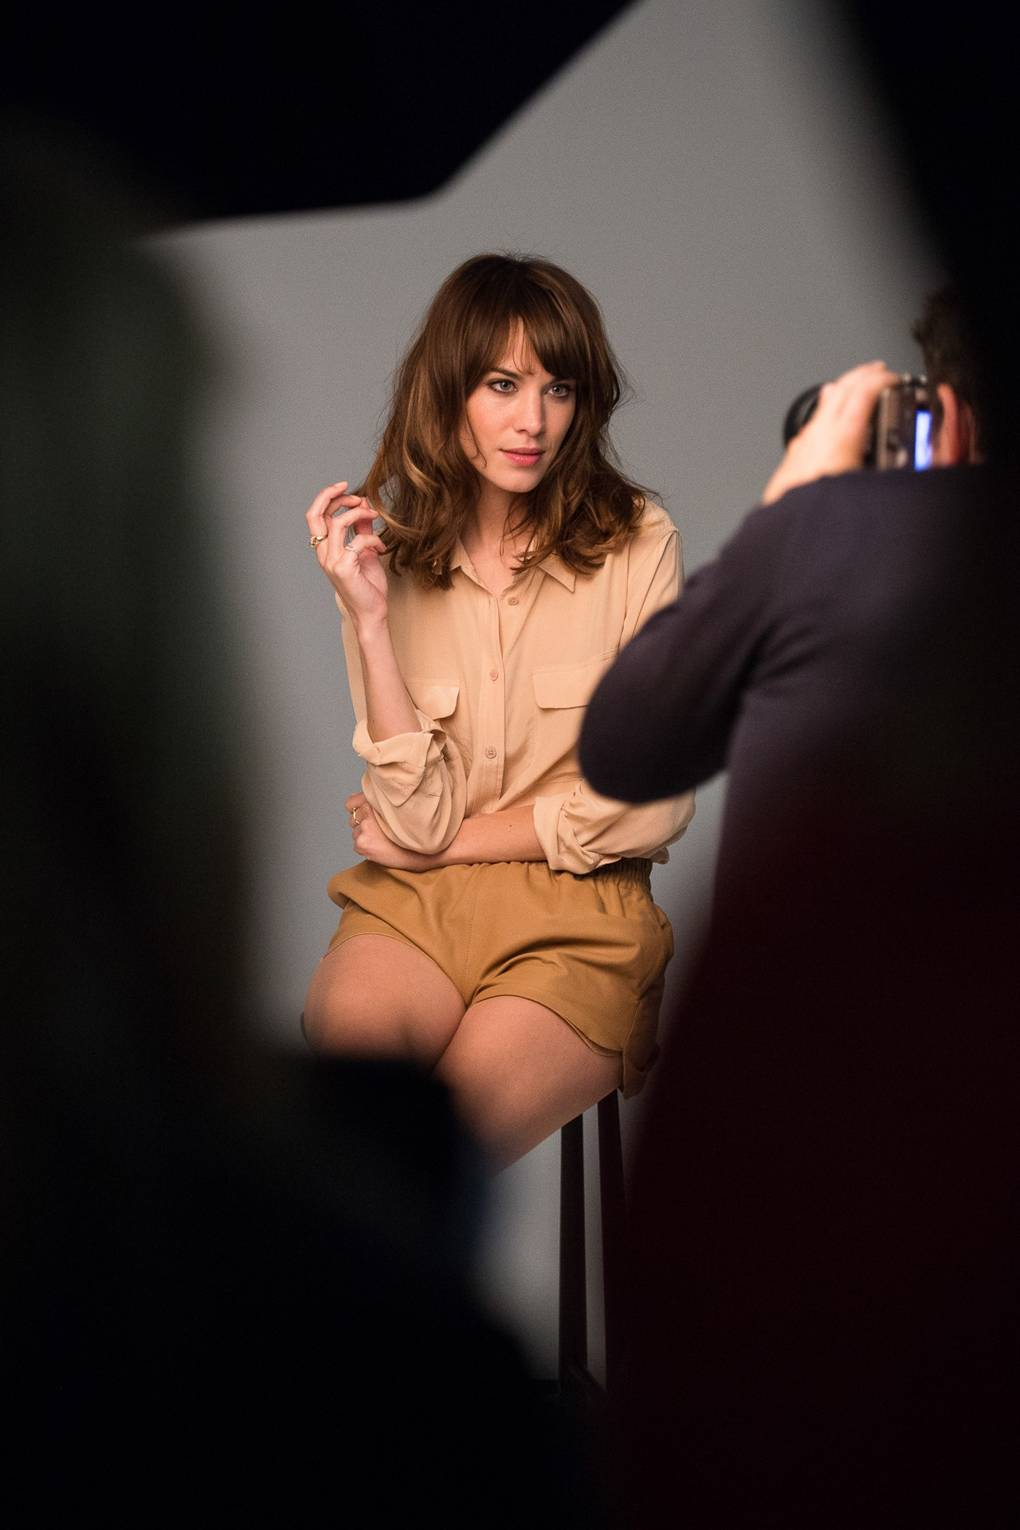 Erotica Alexa Chung nude (76 foto and video), Tits, Fappening, Selfie, swimsuit 2020